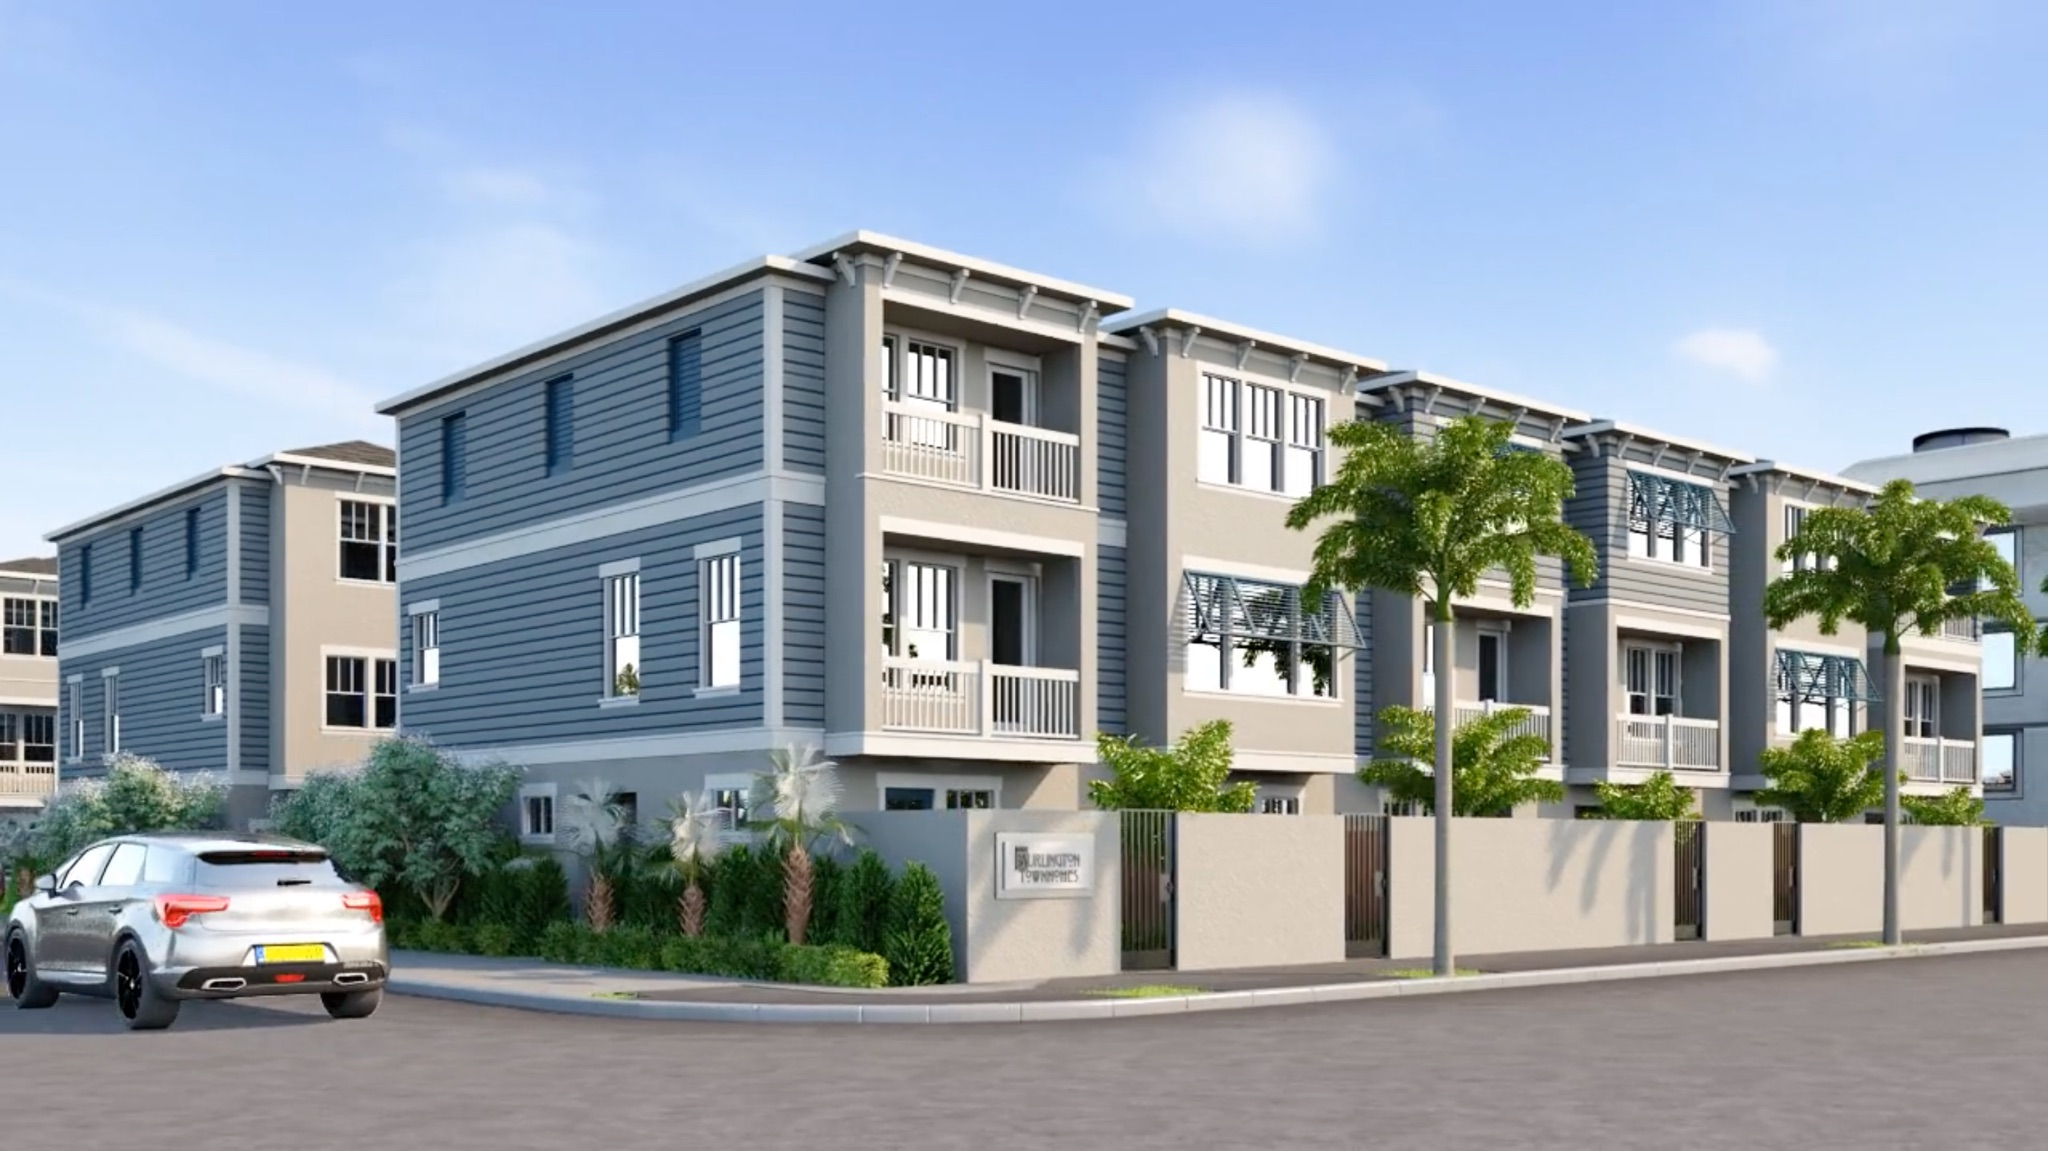 David Weekley Homes is developing the Burlington Townhomes at the northwest corner of Burlington Avenue and 8th Street in Downtown St. Pete.